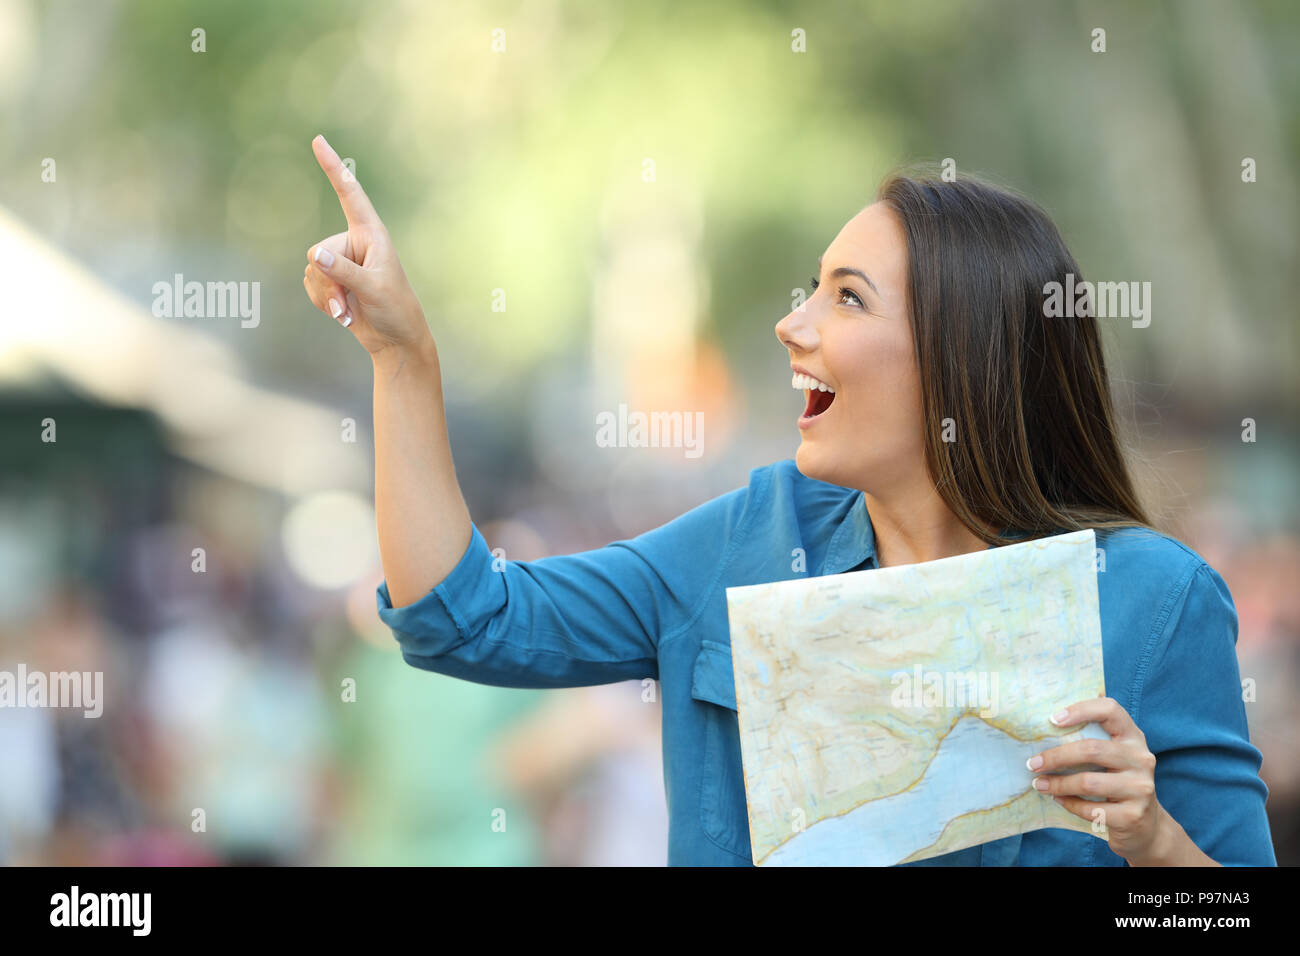 Happy tourist holding a guide and pointing at side on the street - Stock Image